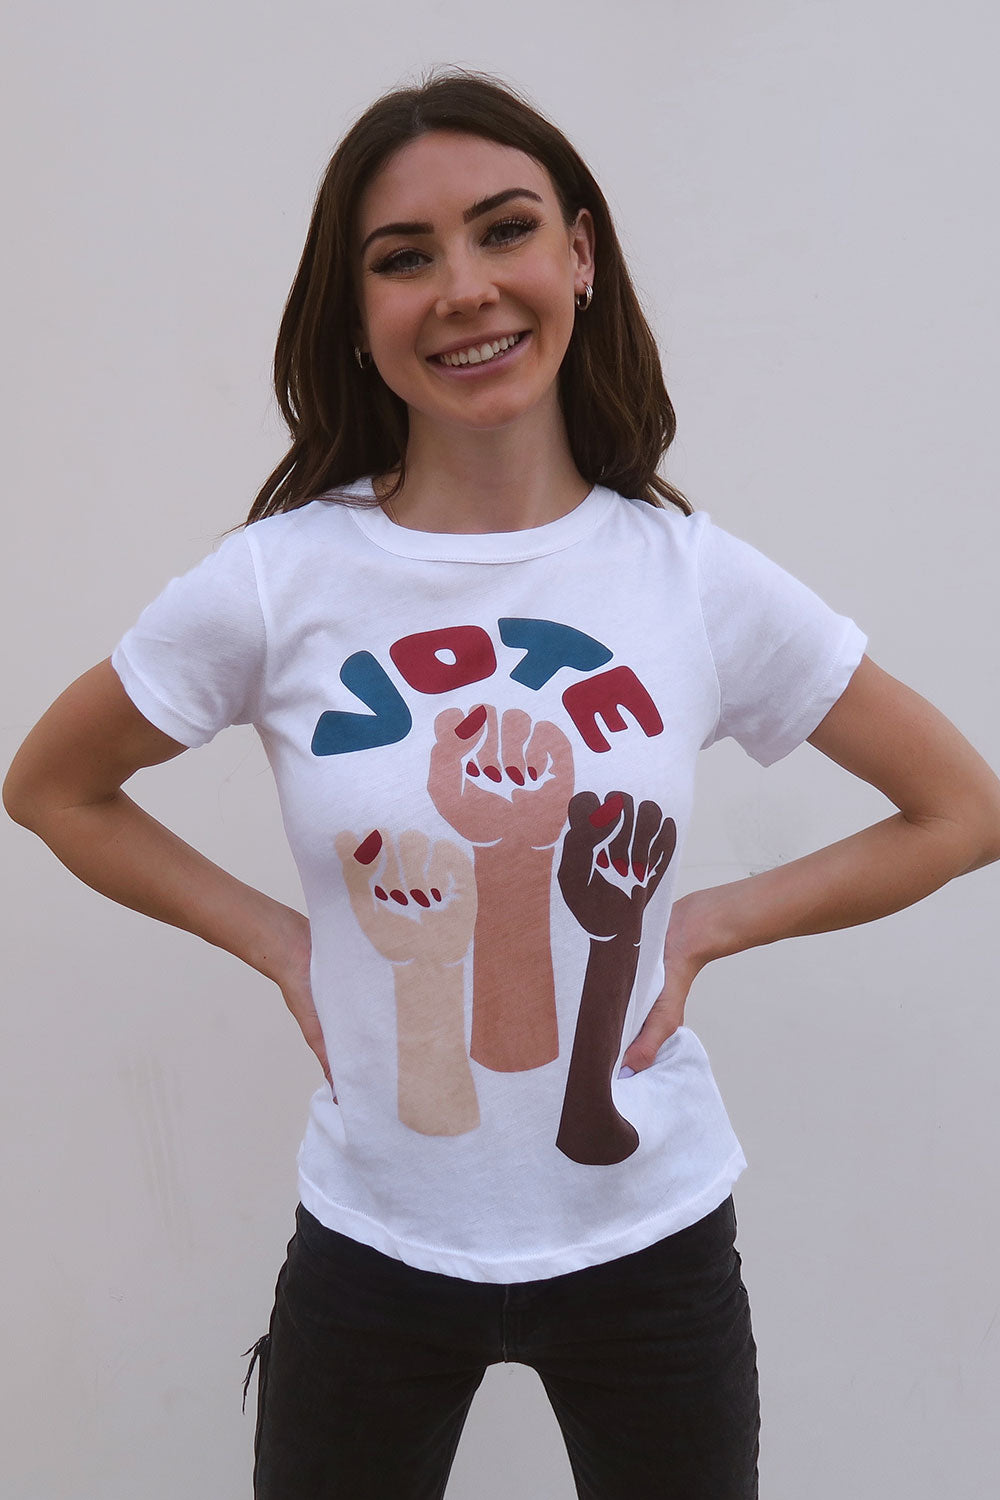 We the Vote WOMENS chaserbrand4.myshopify.com